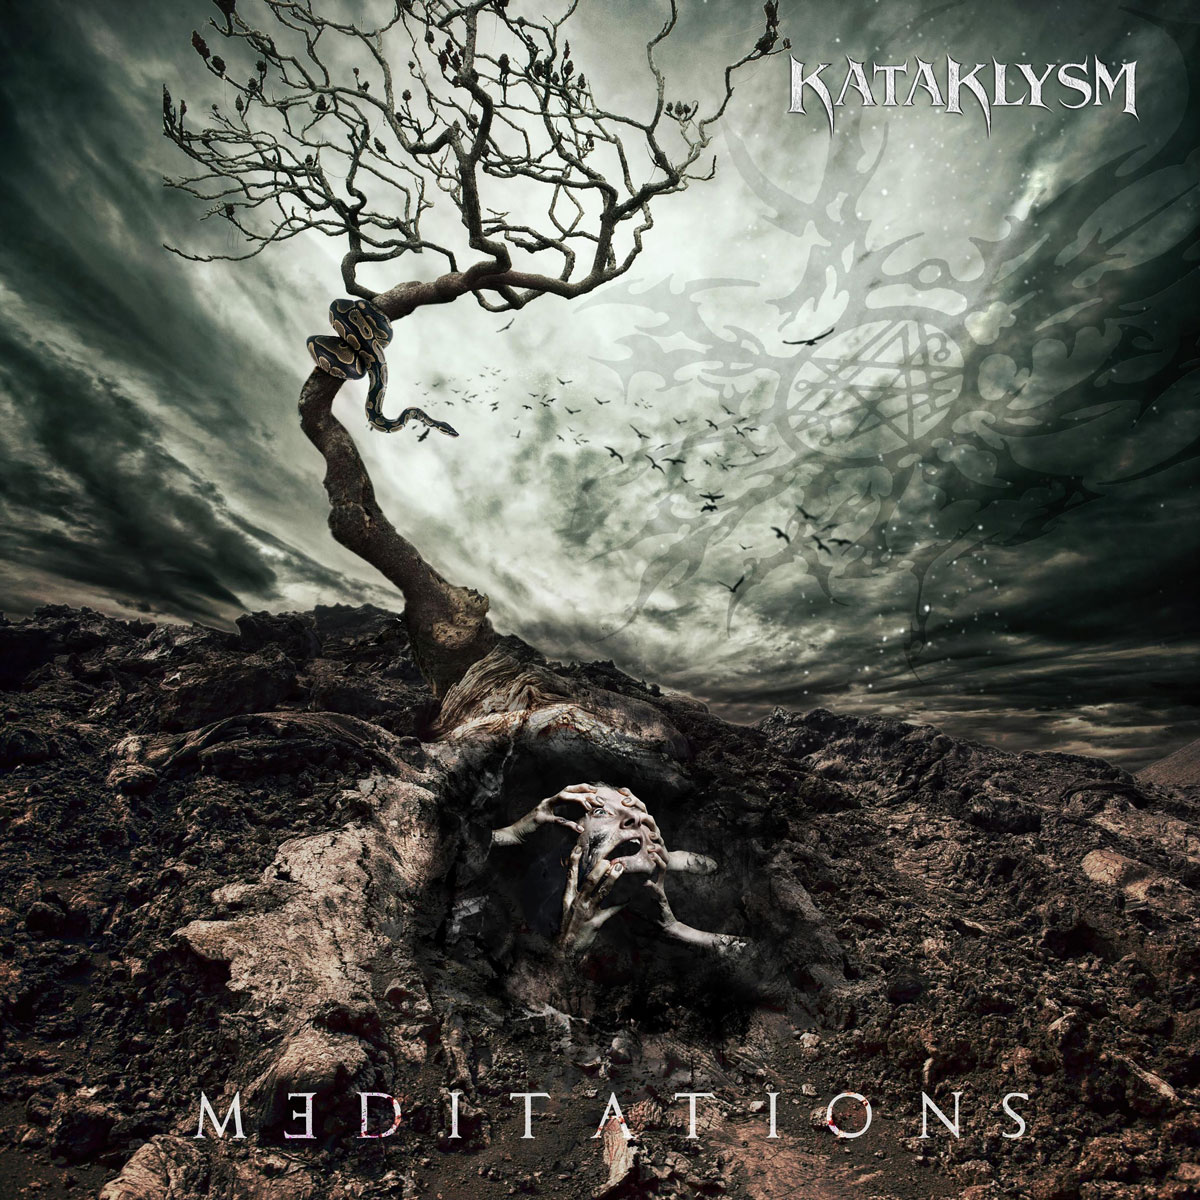 """Kataklysm"" Kataklysm. Meditations (CD+DVD)"